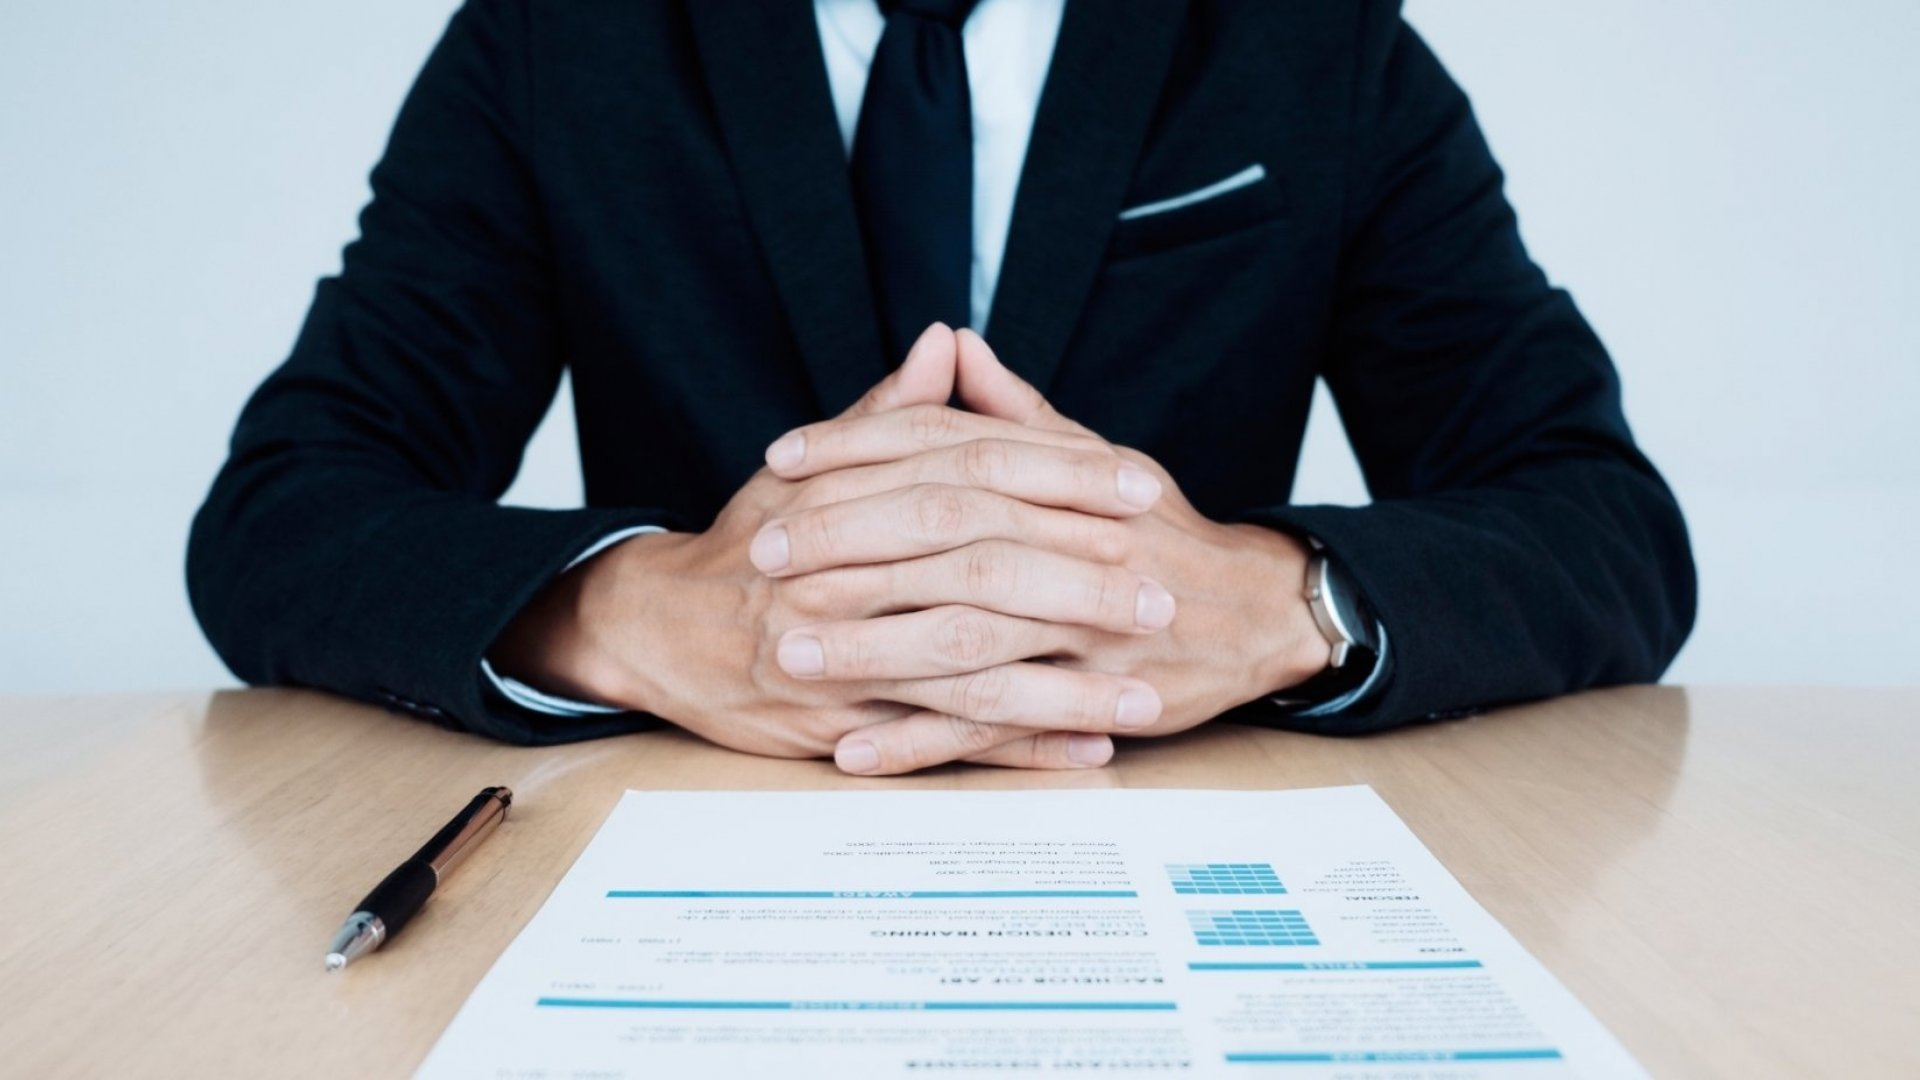 How to Prepare for a Great Job Interview: 8 Practical Tips